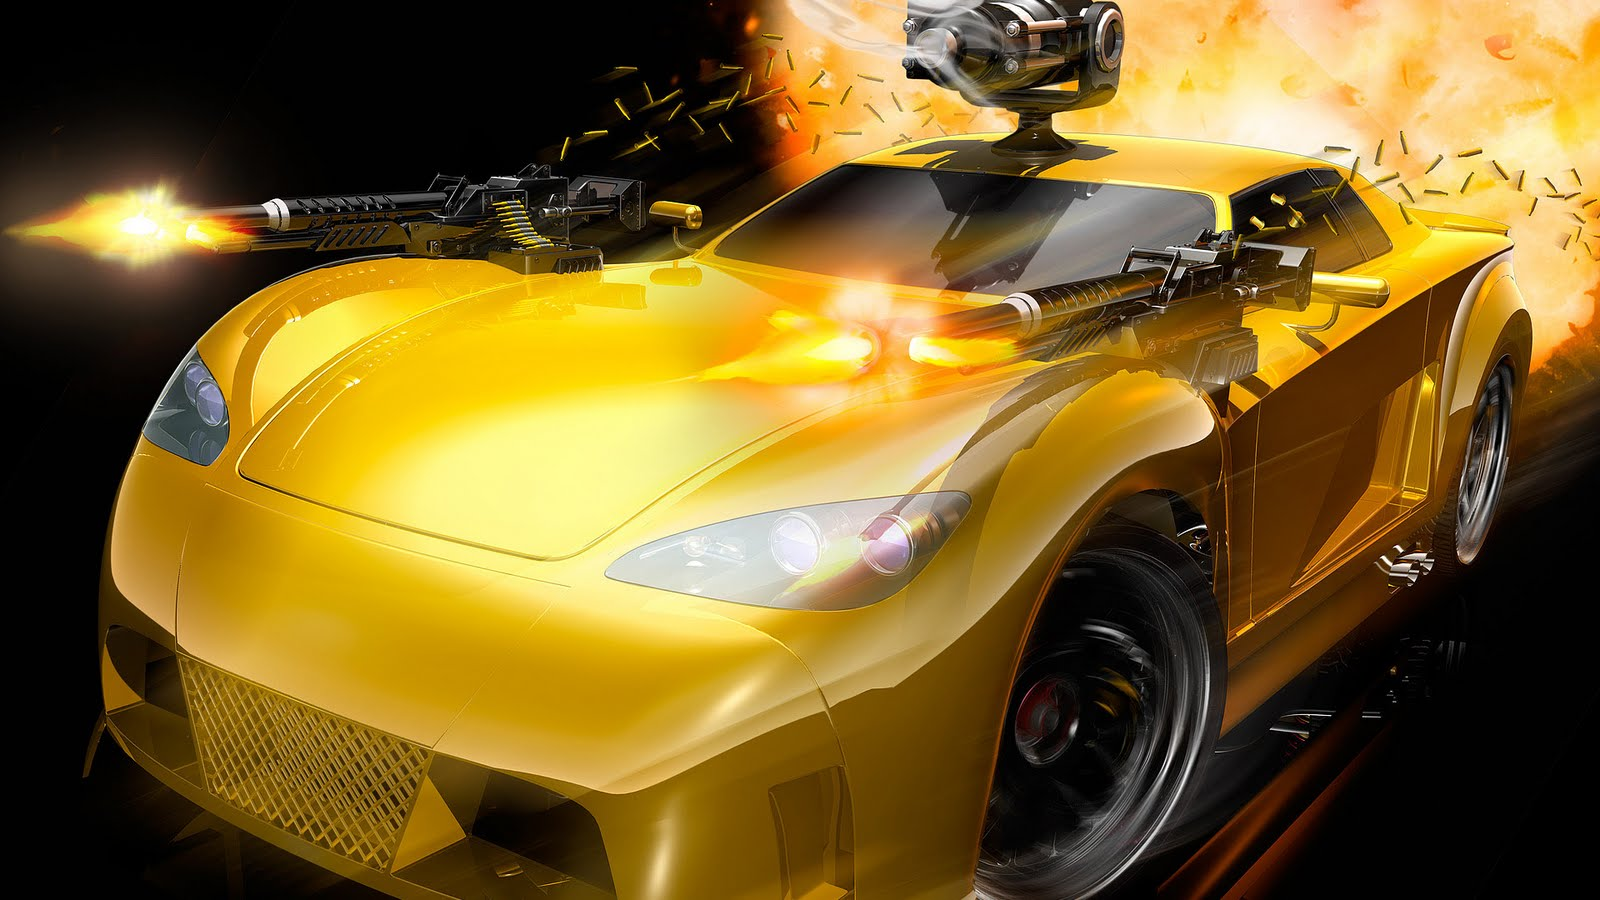 The Best Car Games Image - Game Photos